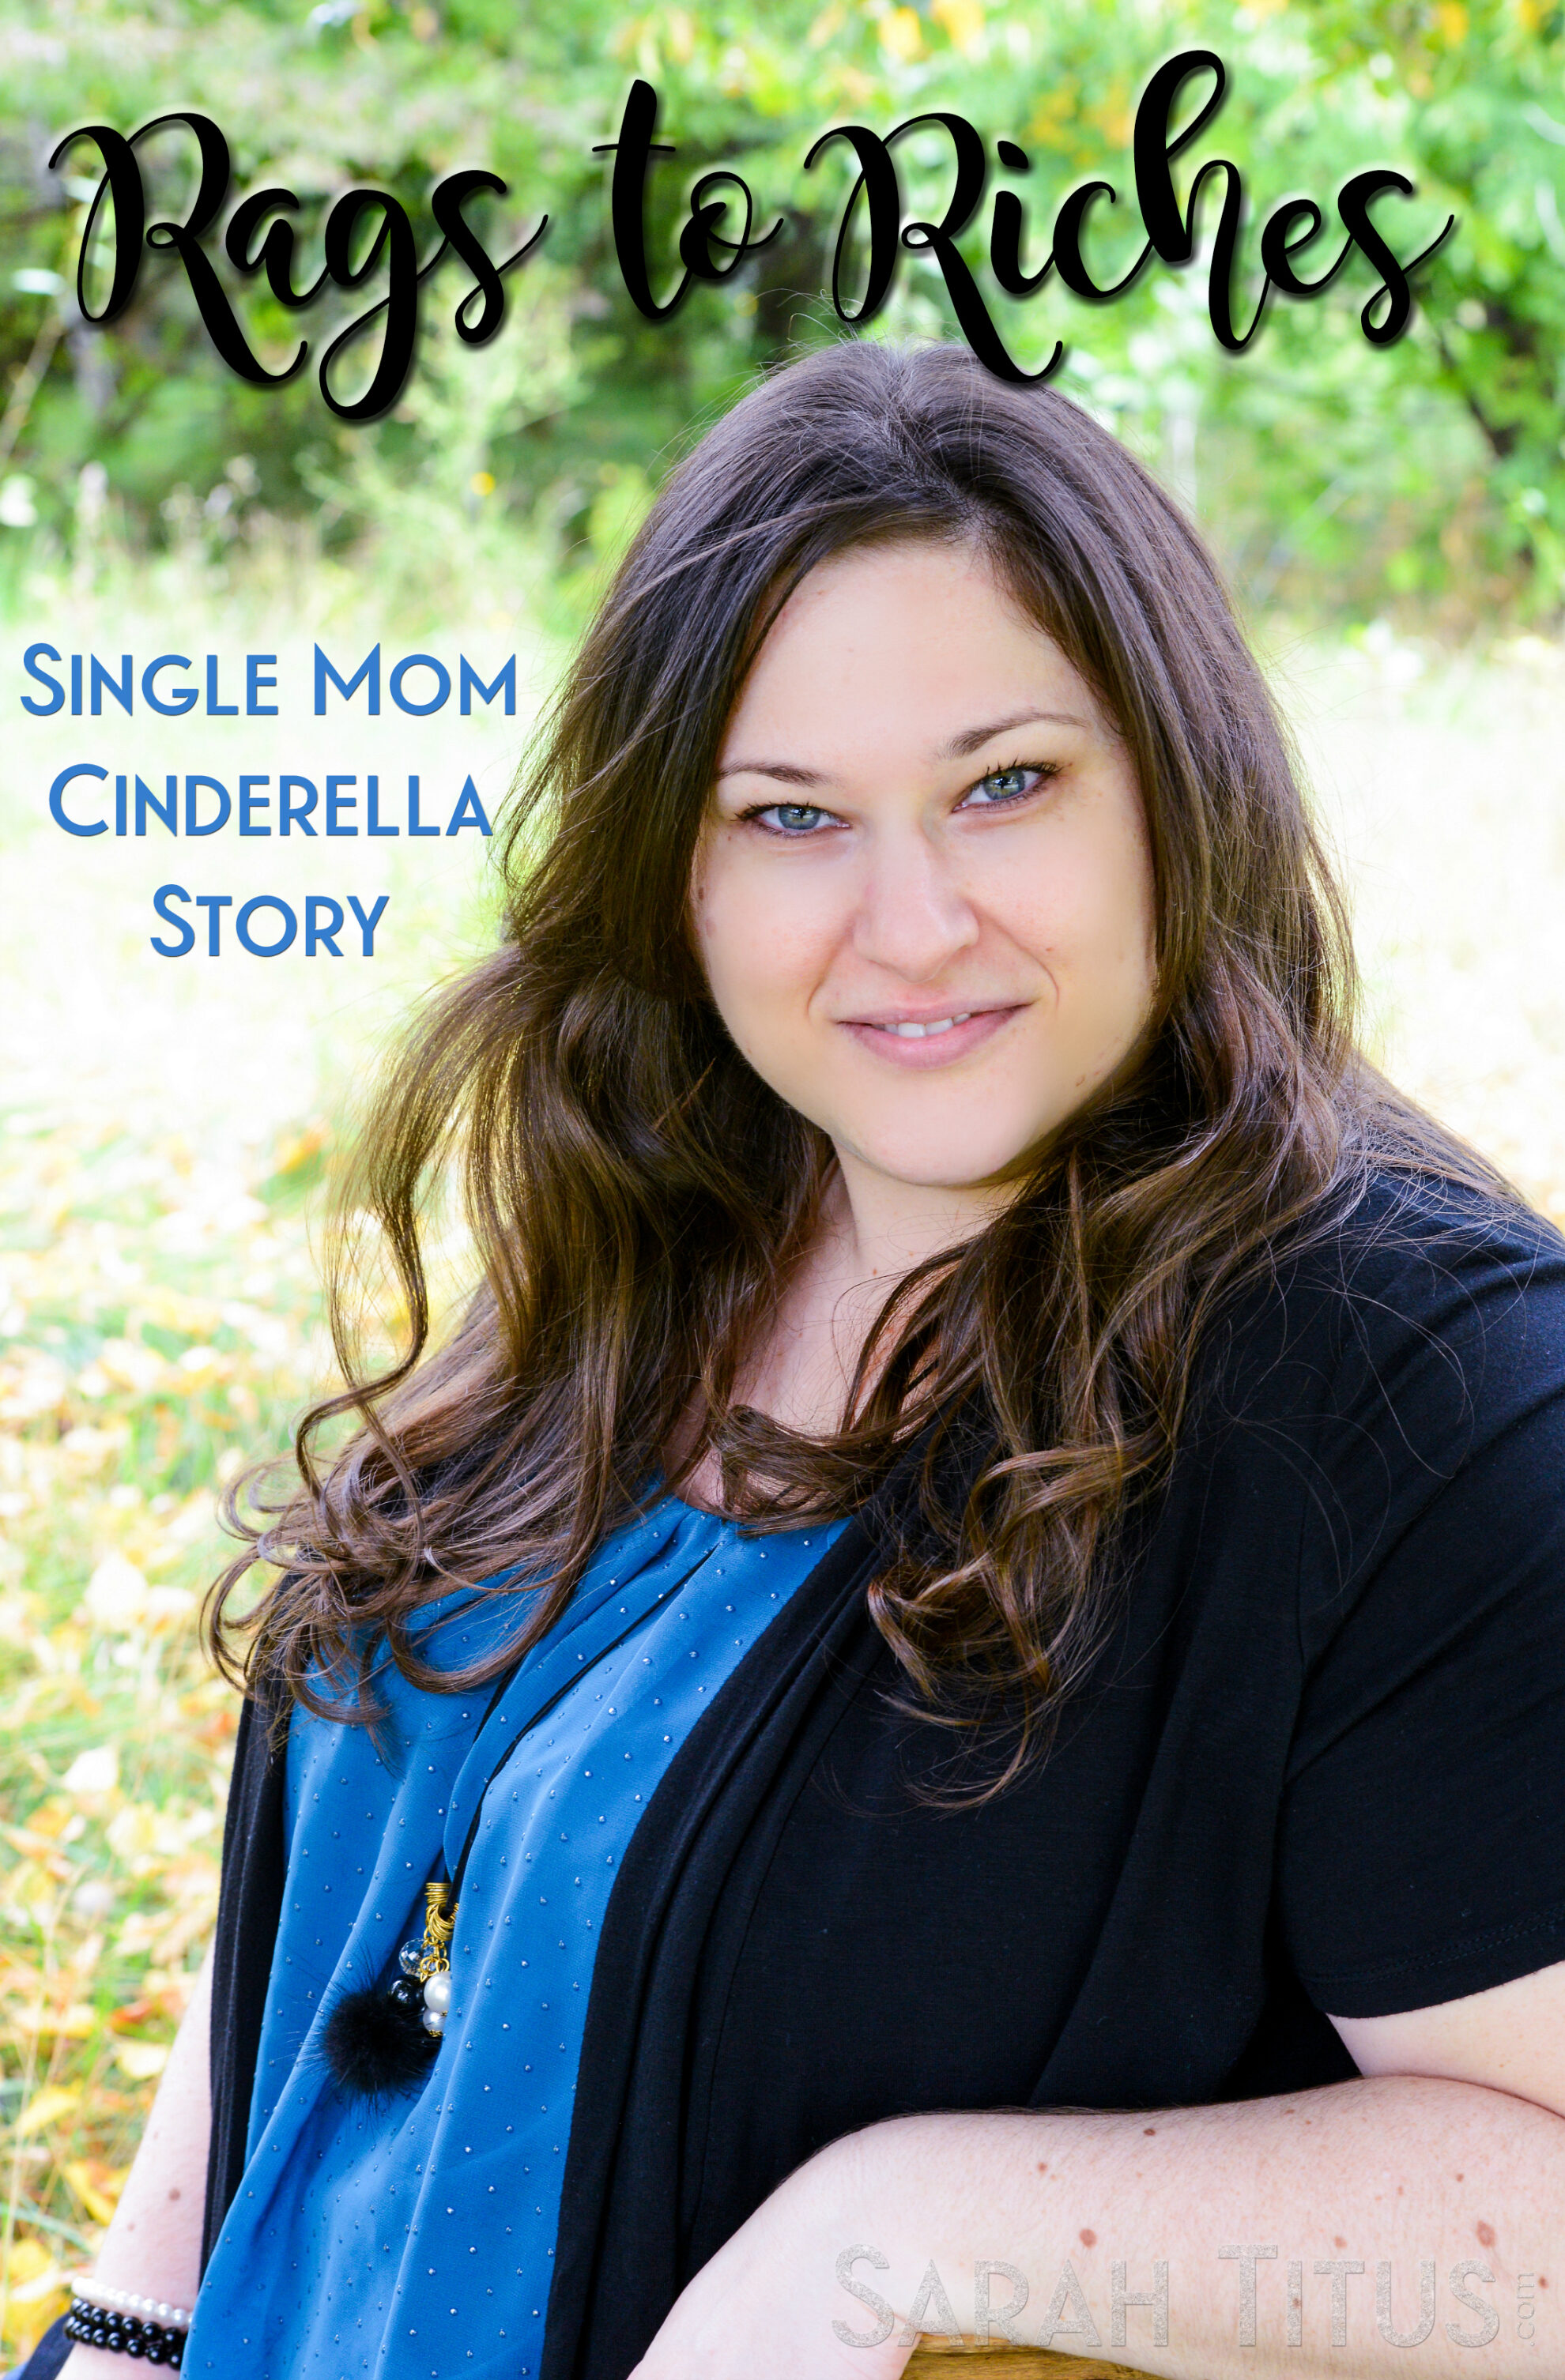 Completely true rags to riches story of how a single mom goes from homeless to $23k/year income!